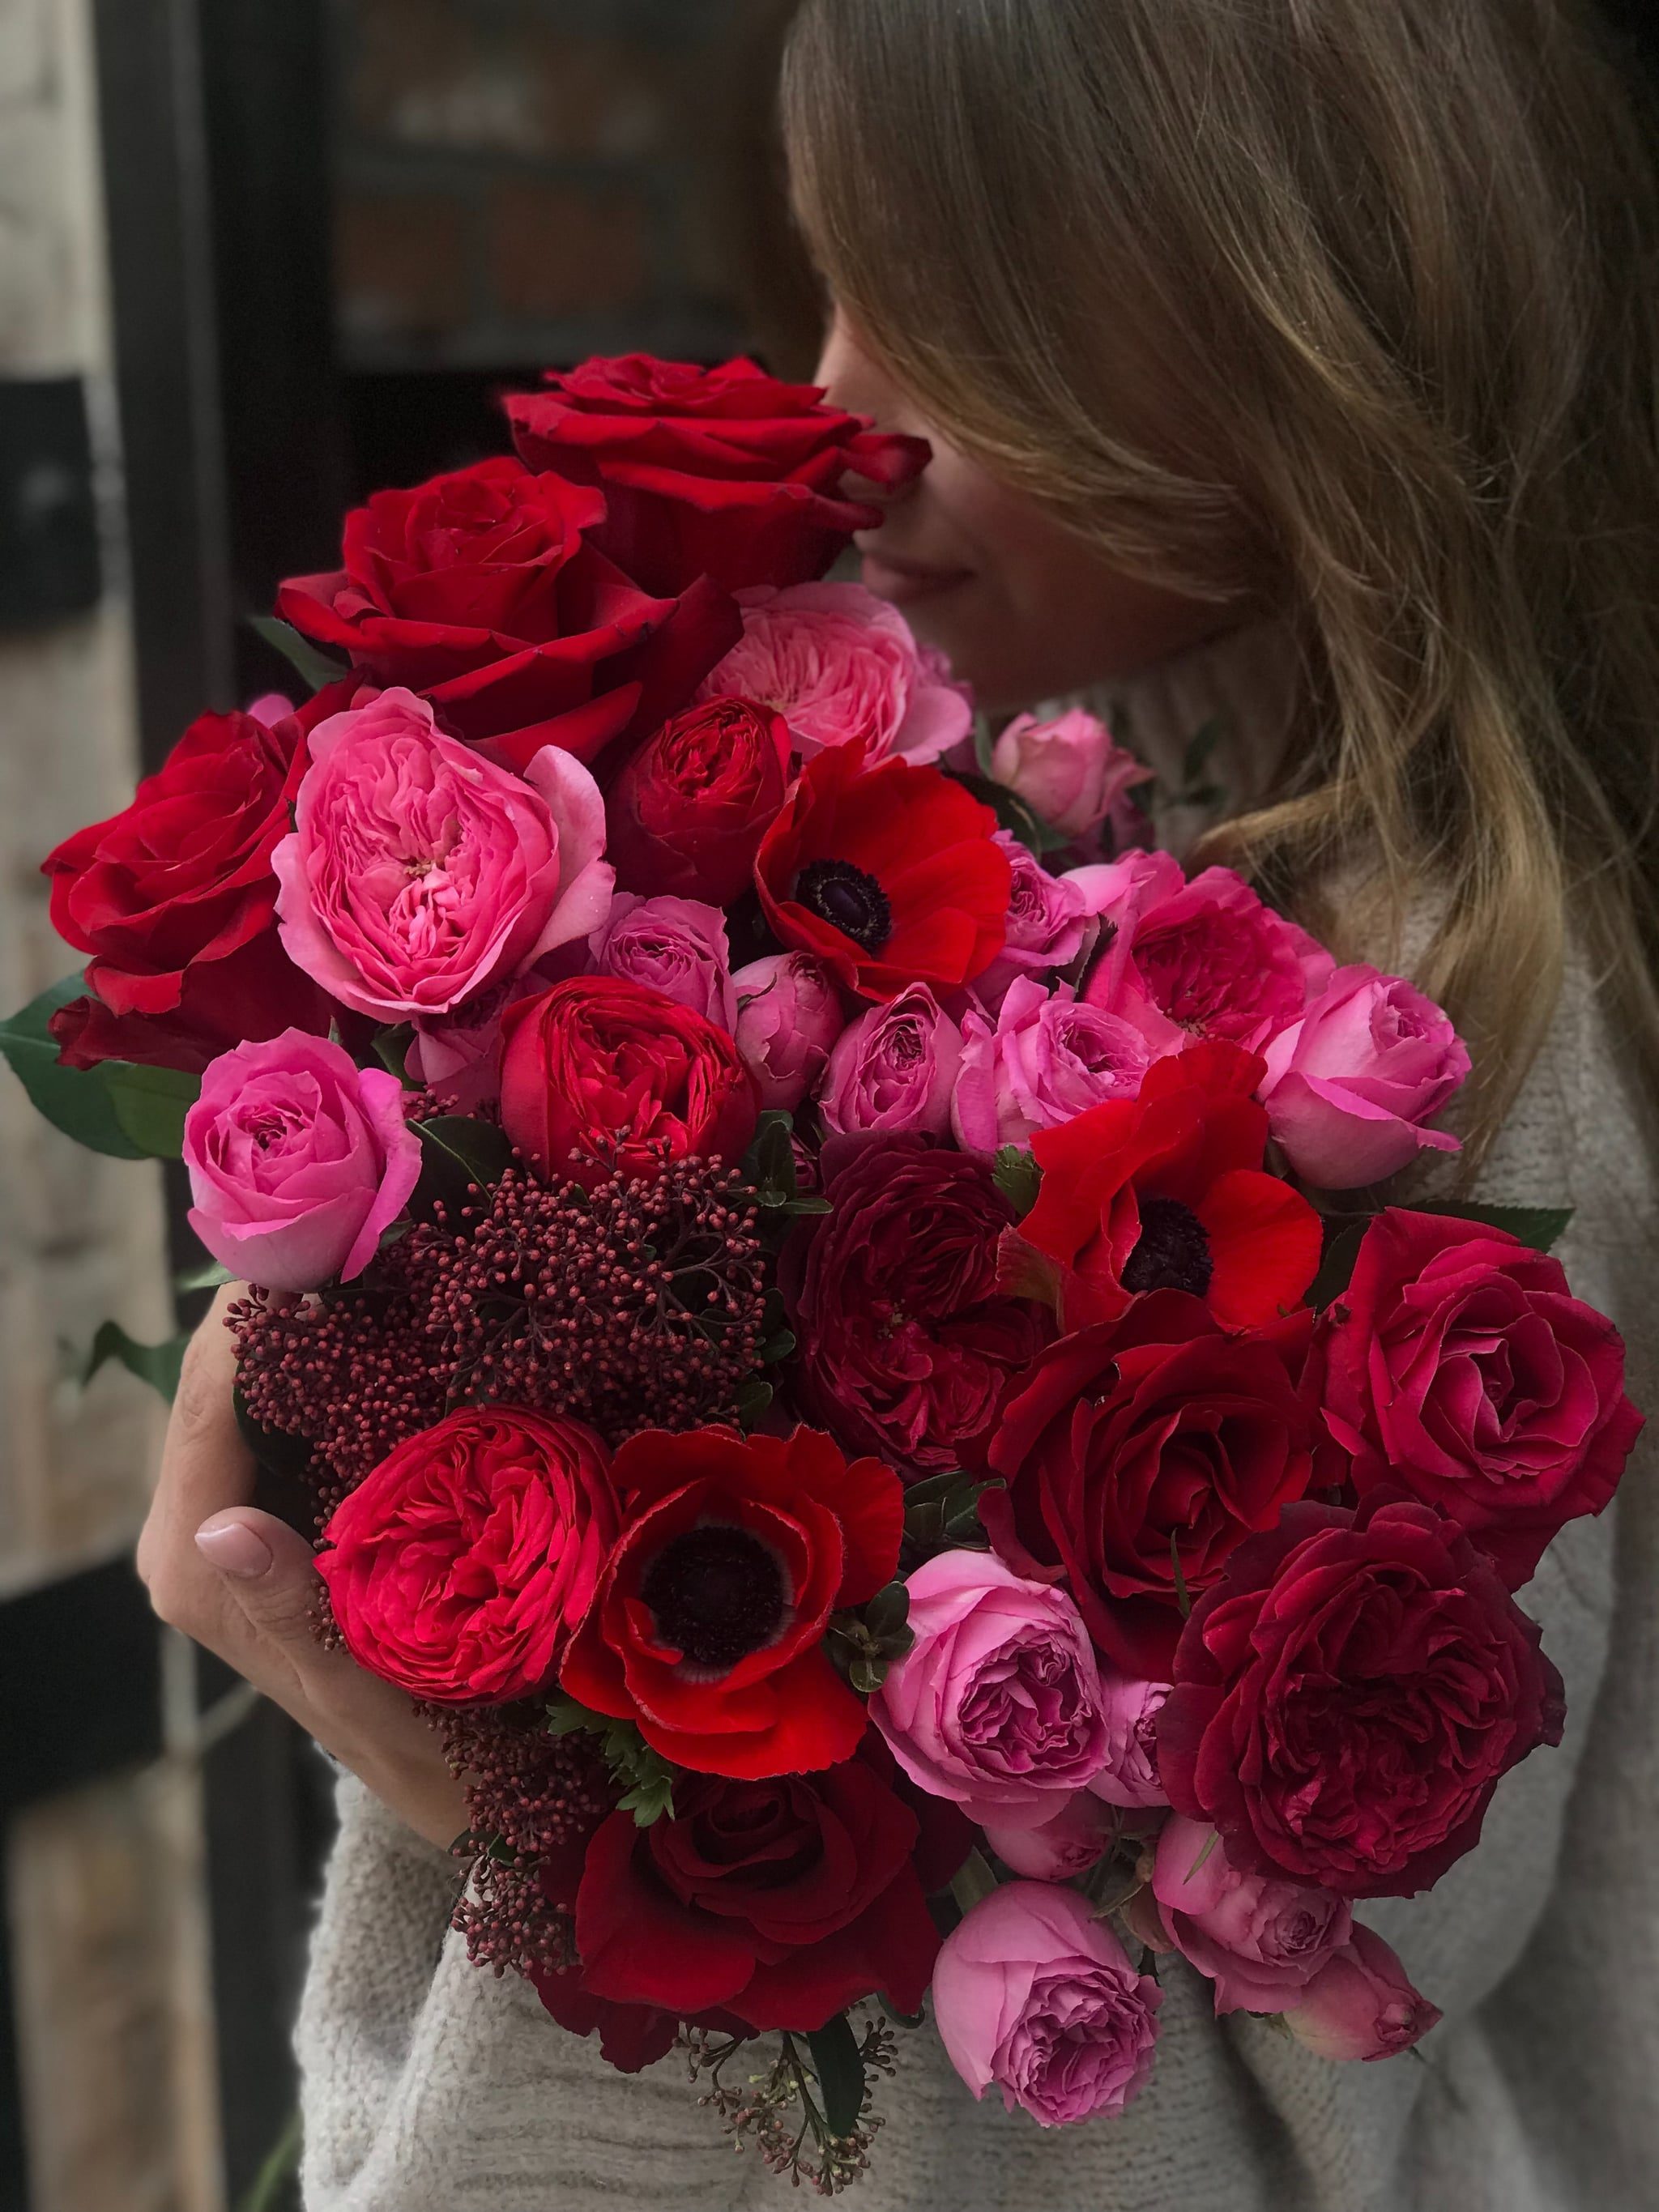 What Does The Number Of Roses Given Mean Popsugar Love Uk